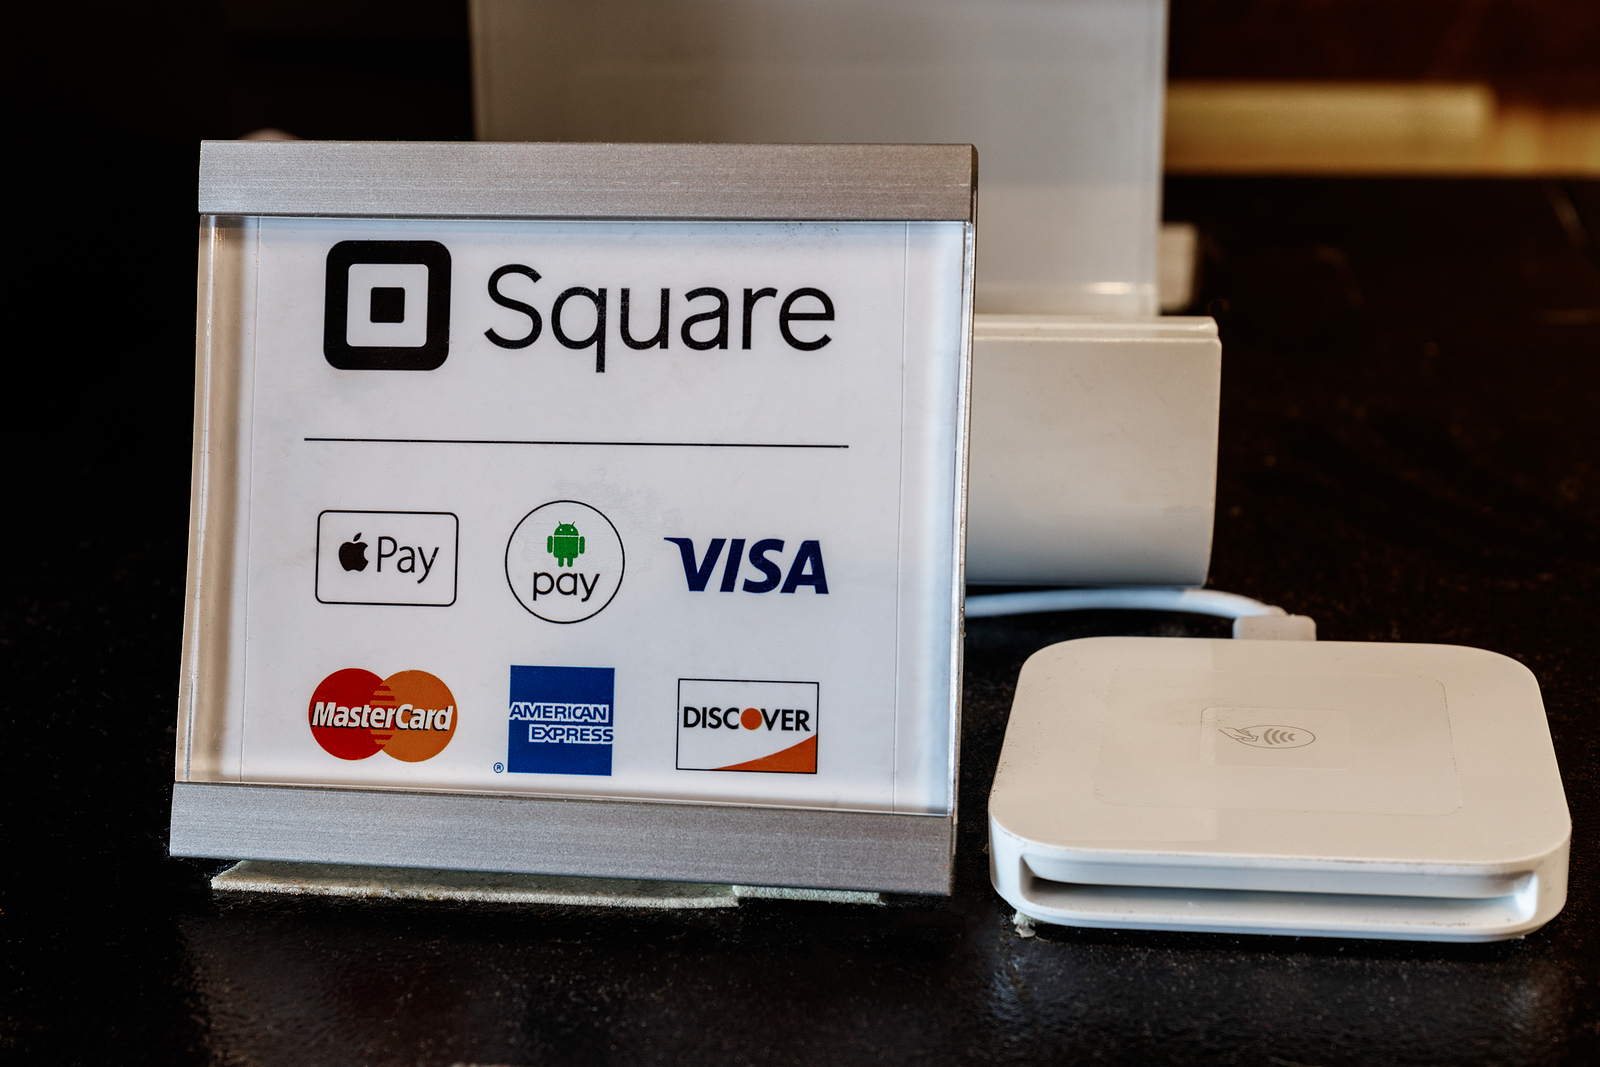 Square SQ stock news and analysis